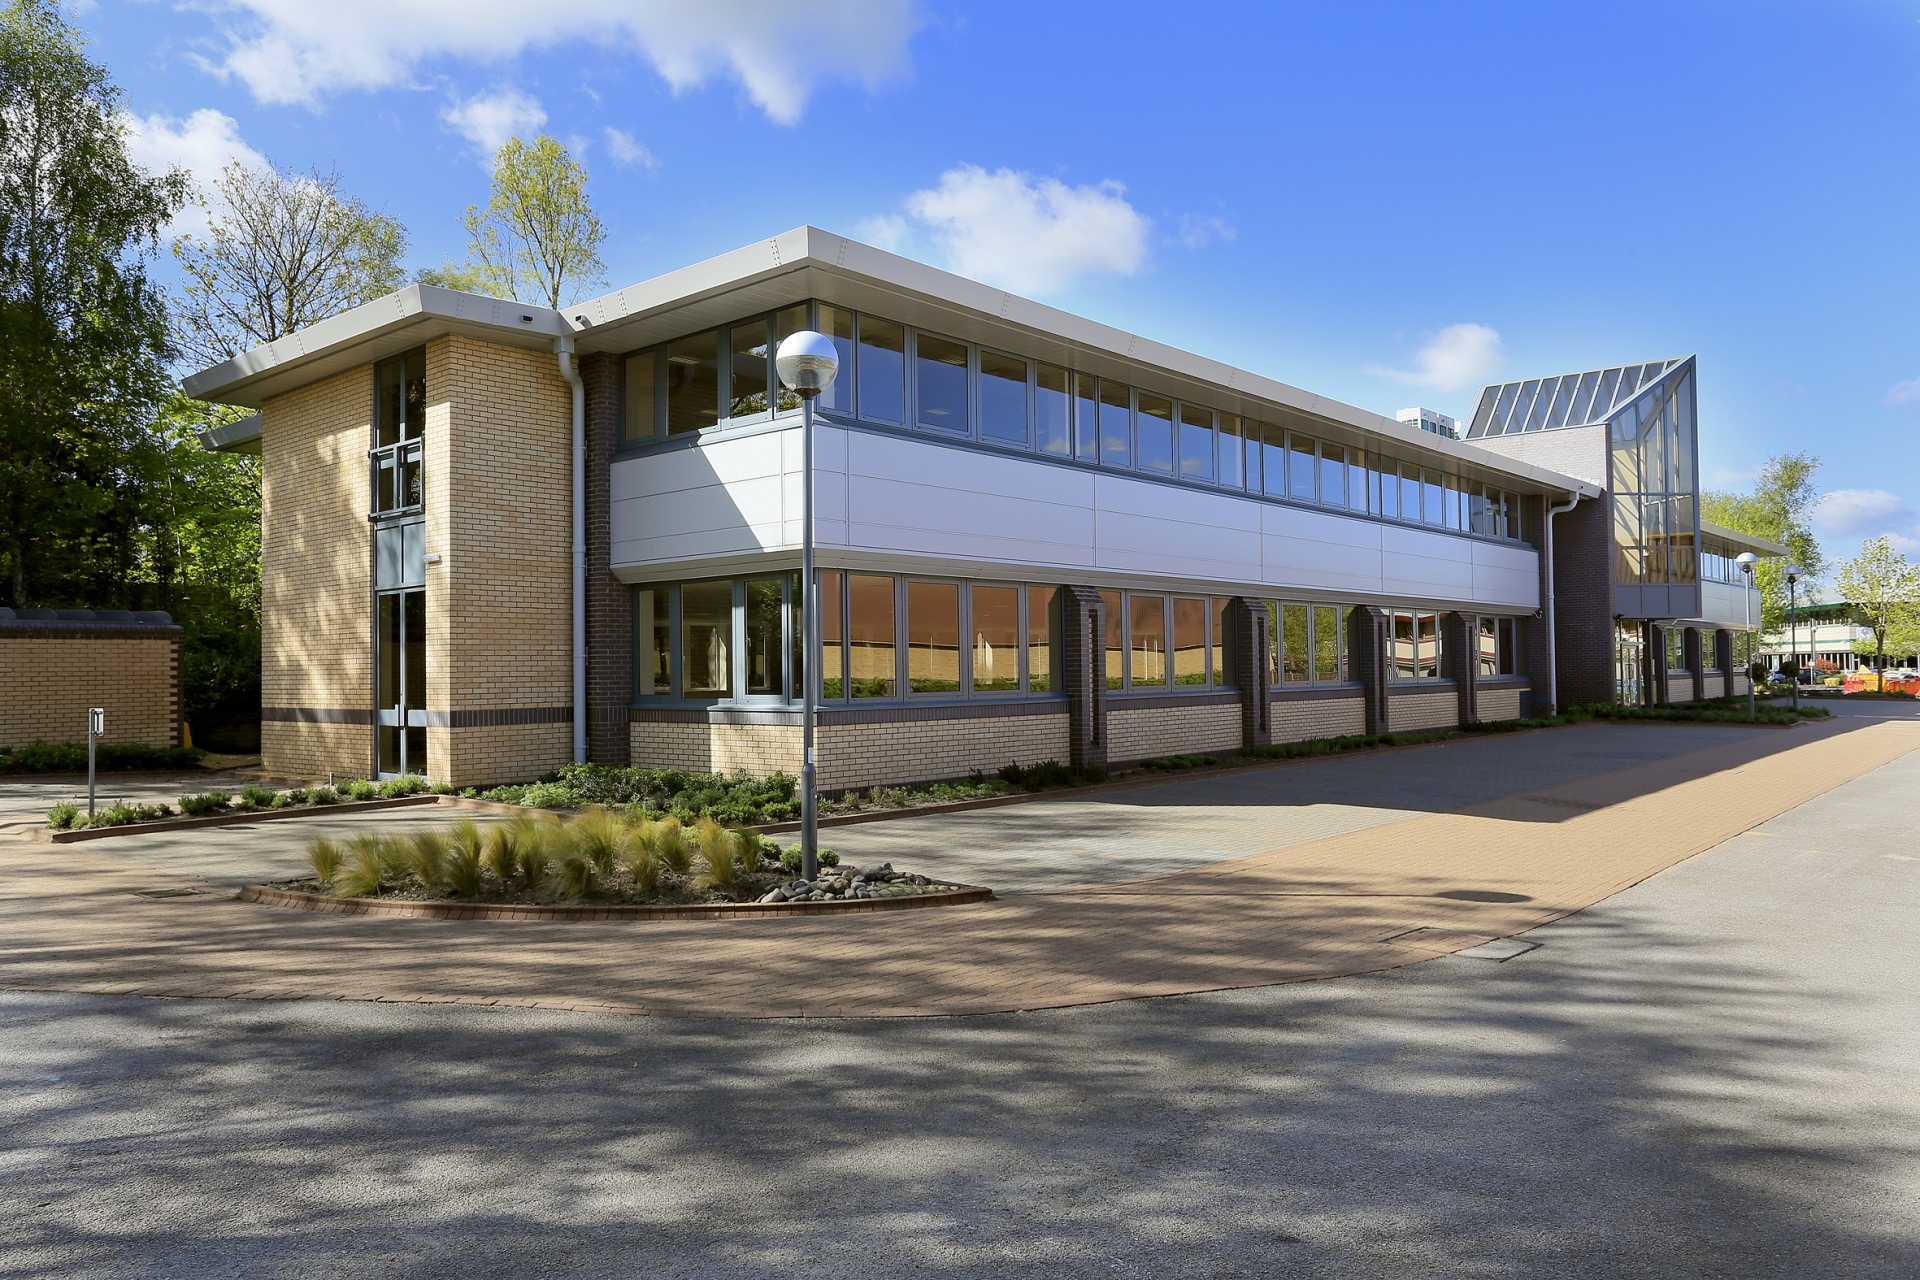 Two units let at Mulberry Business Park, Wokingham